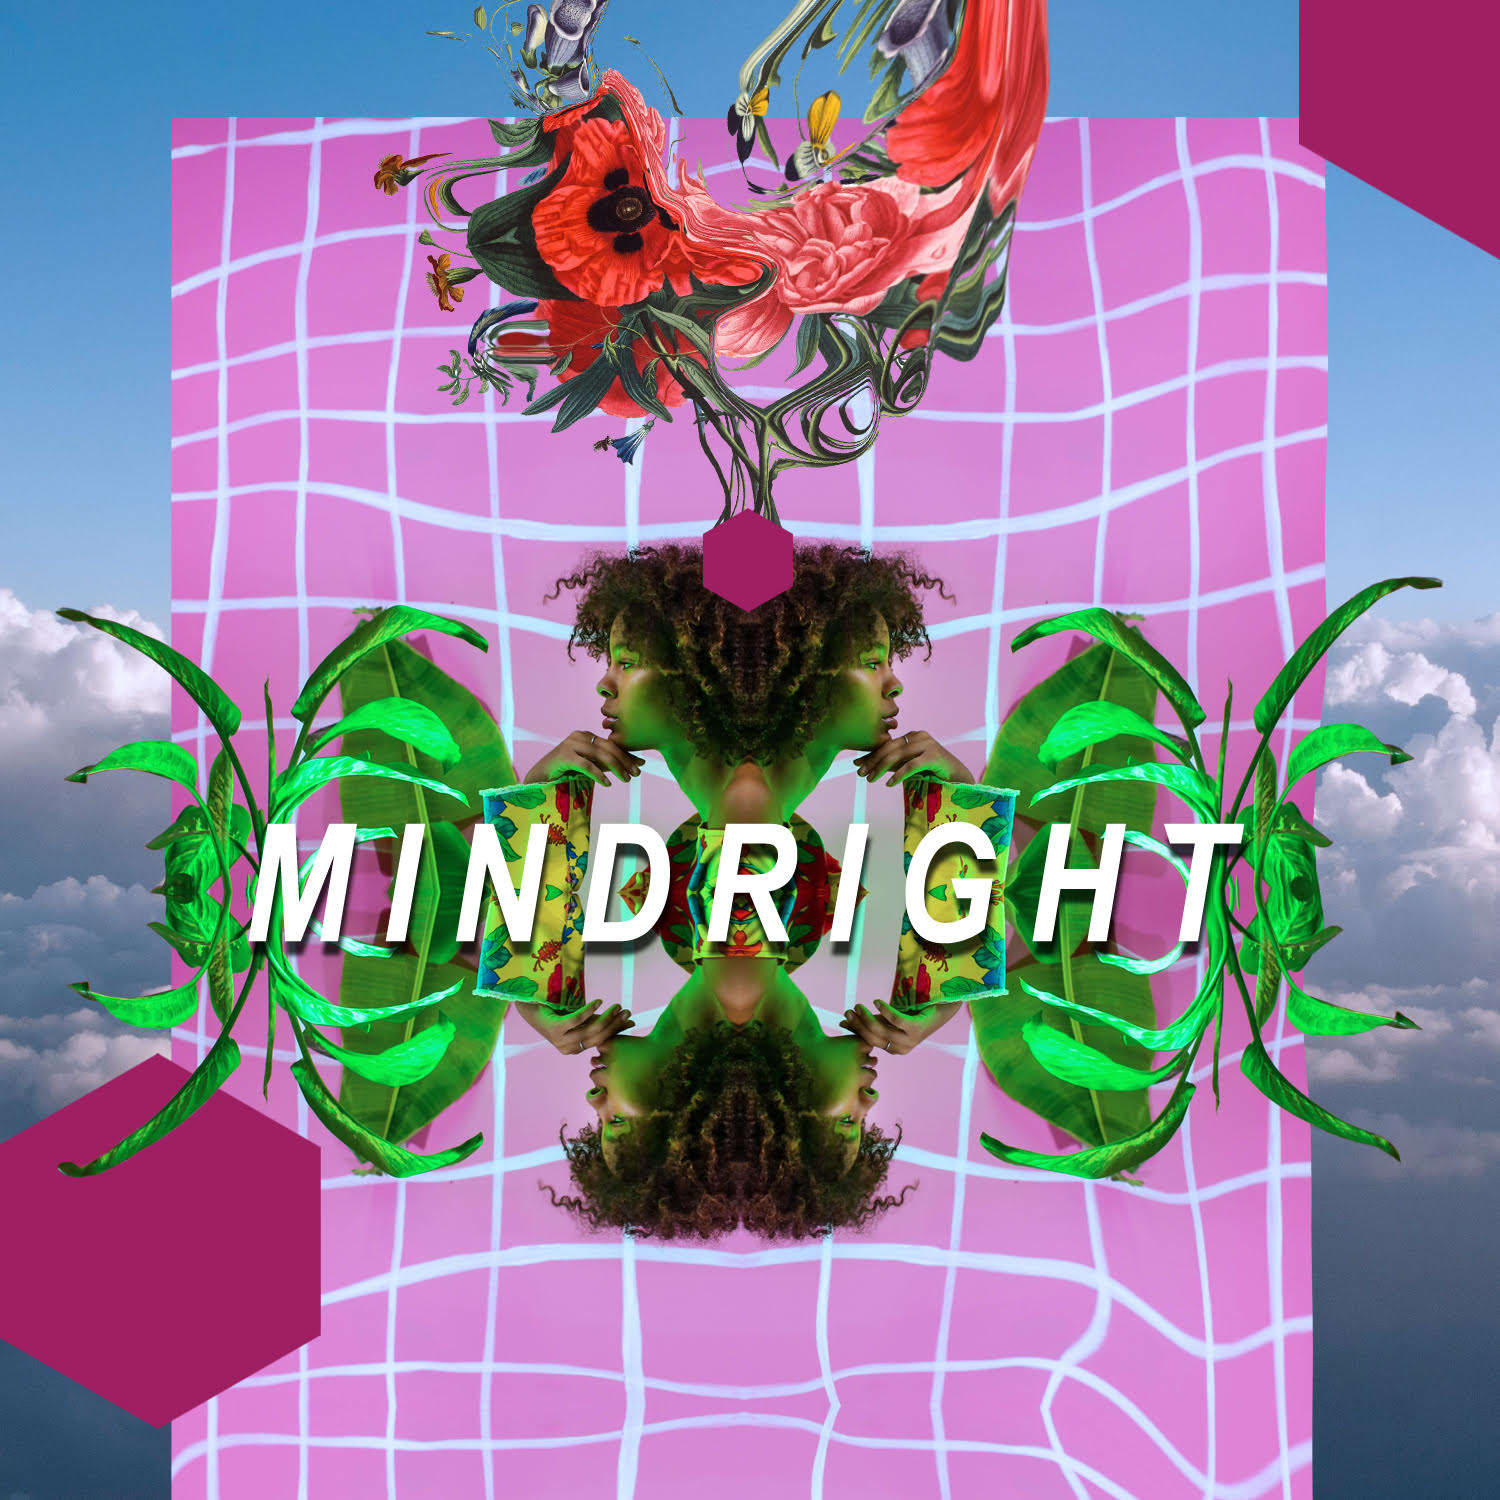 Mind Right Album Artwork